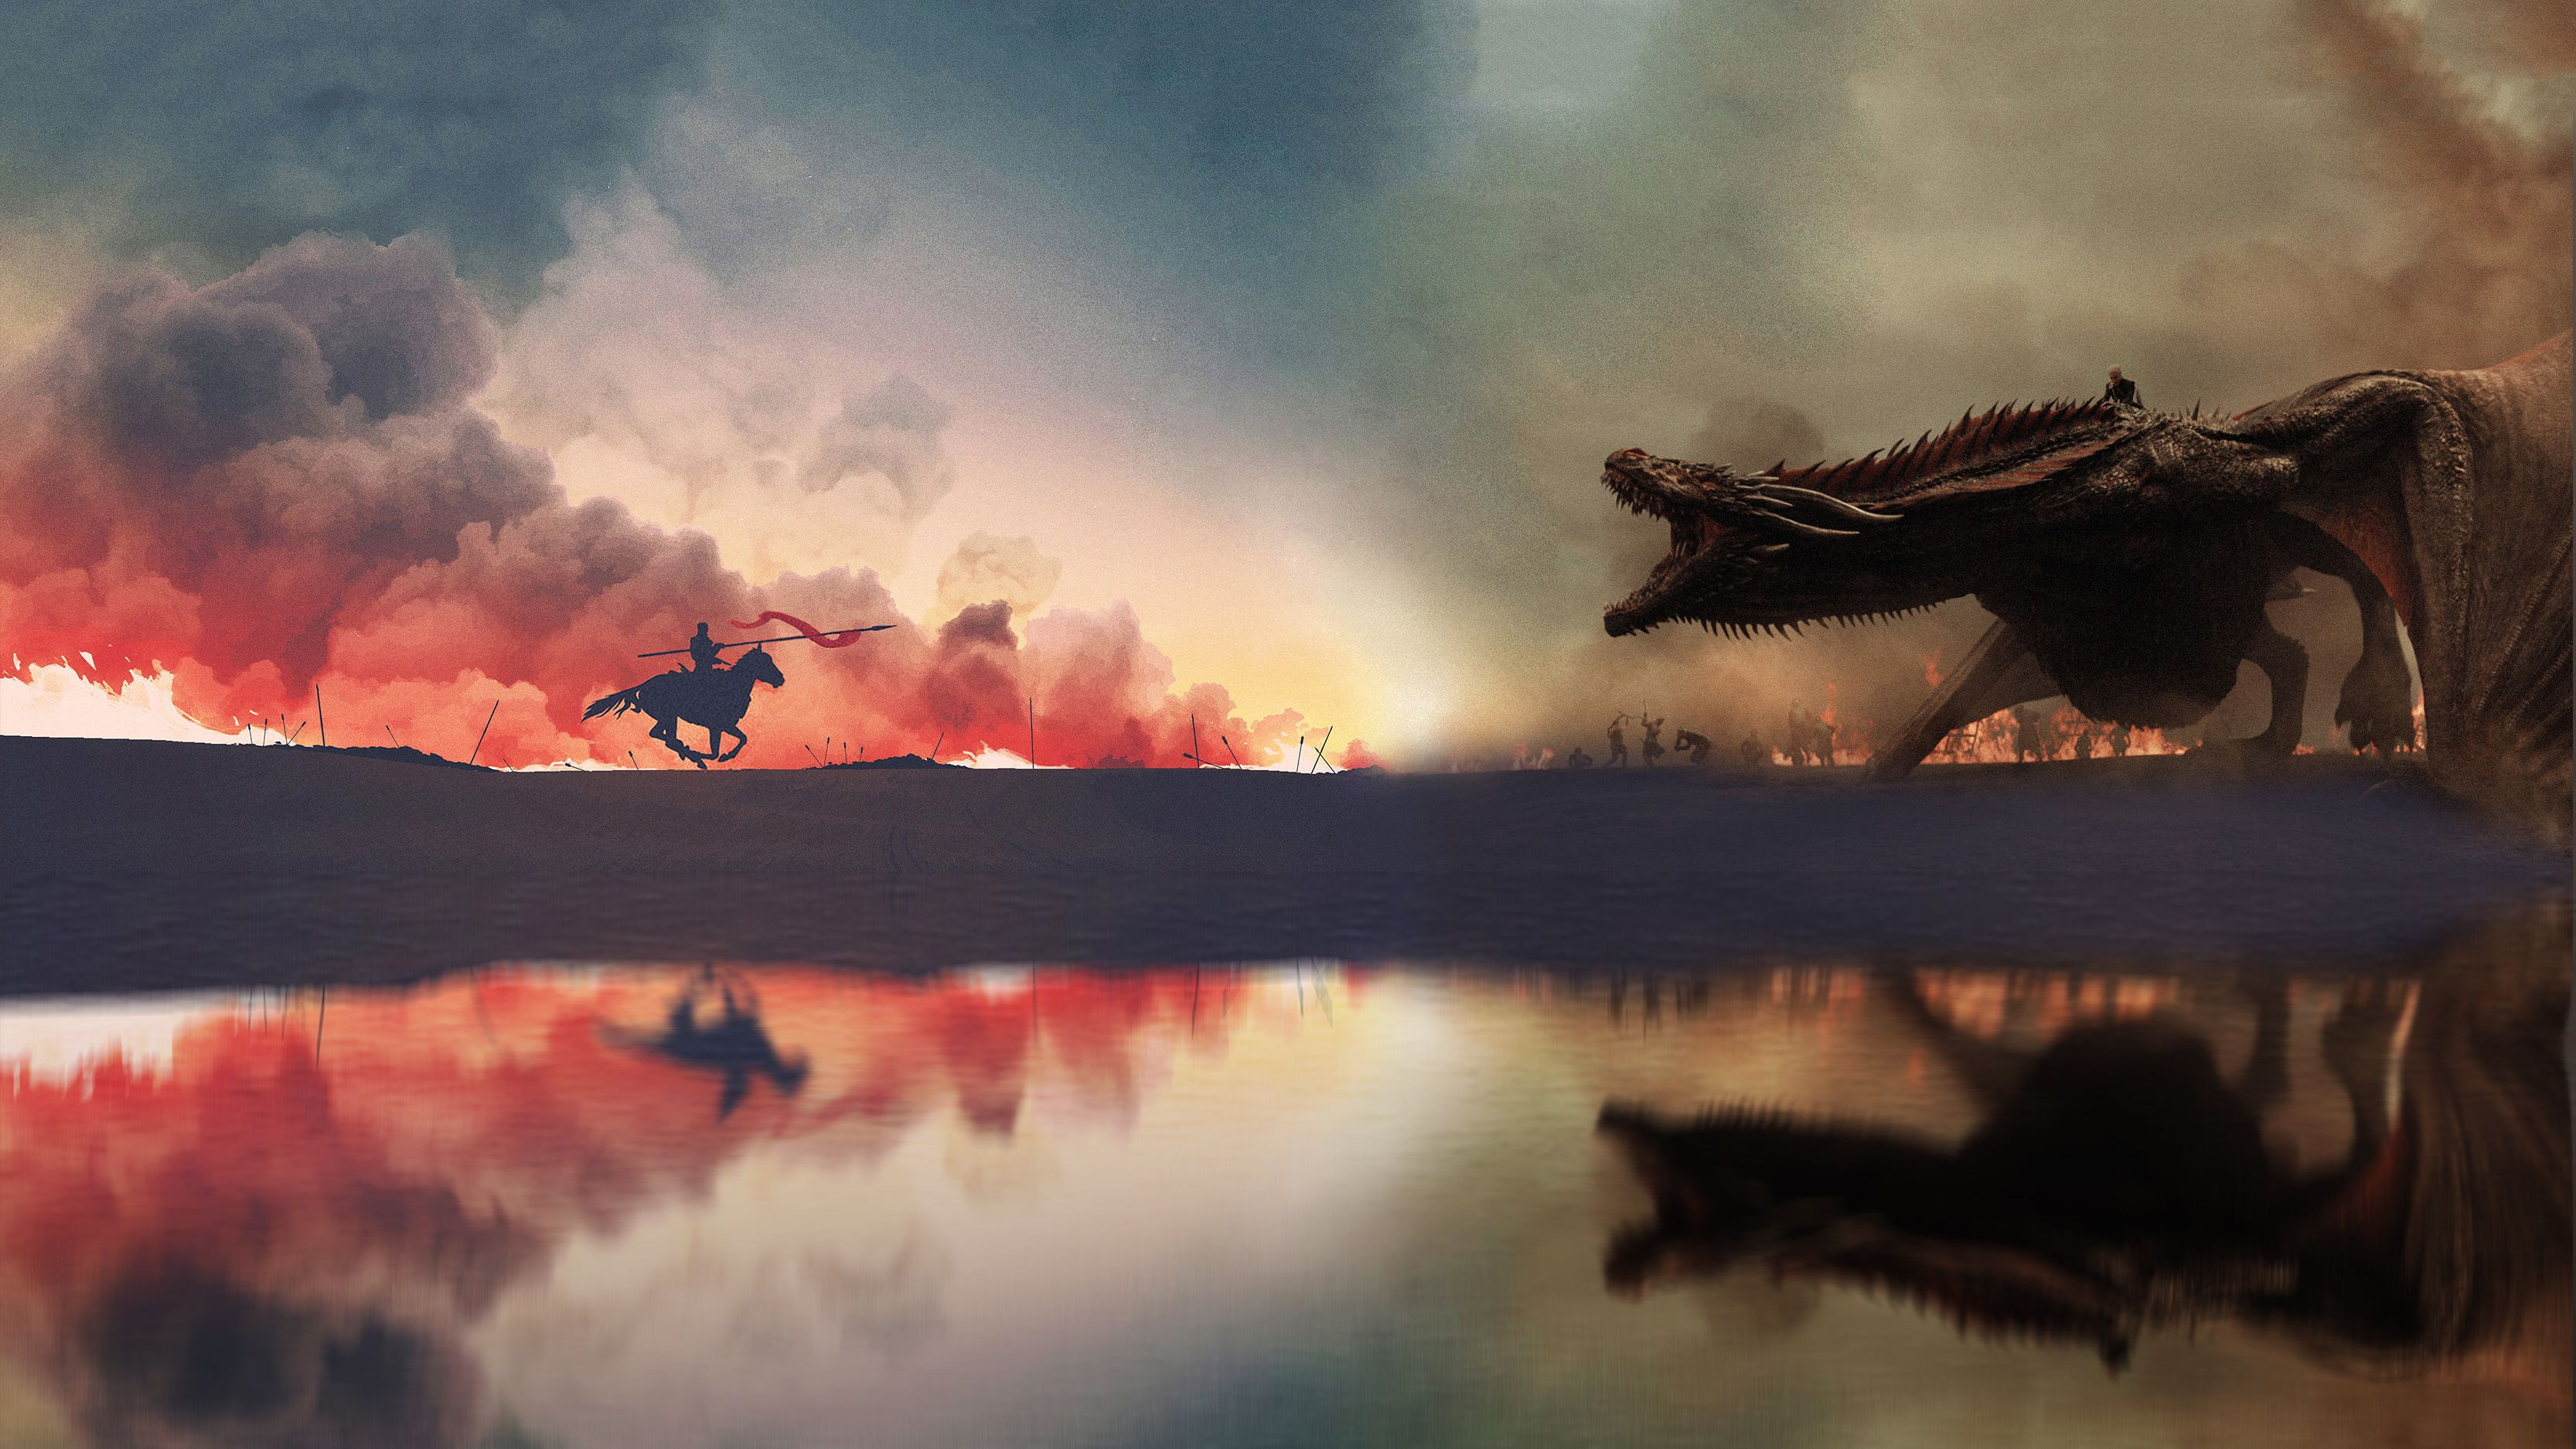 Game Of Thrones War Has Started Artwork 4k 6v Ultra Hd Wallpaper 2018 Free Wallpapers Dow Game Of Thrones Artwork Game Of Thrones Dragons Game Of Thrones Art